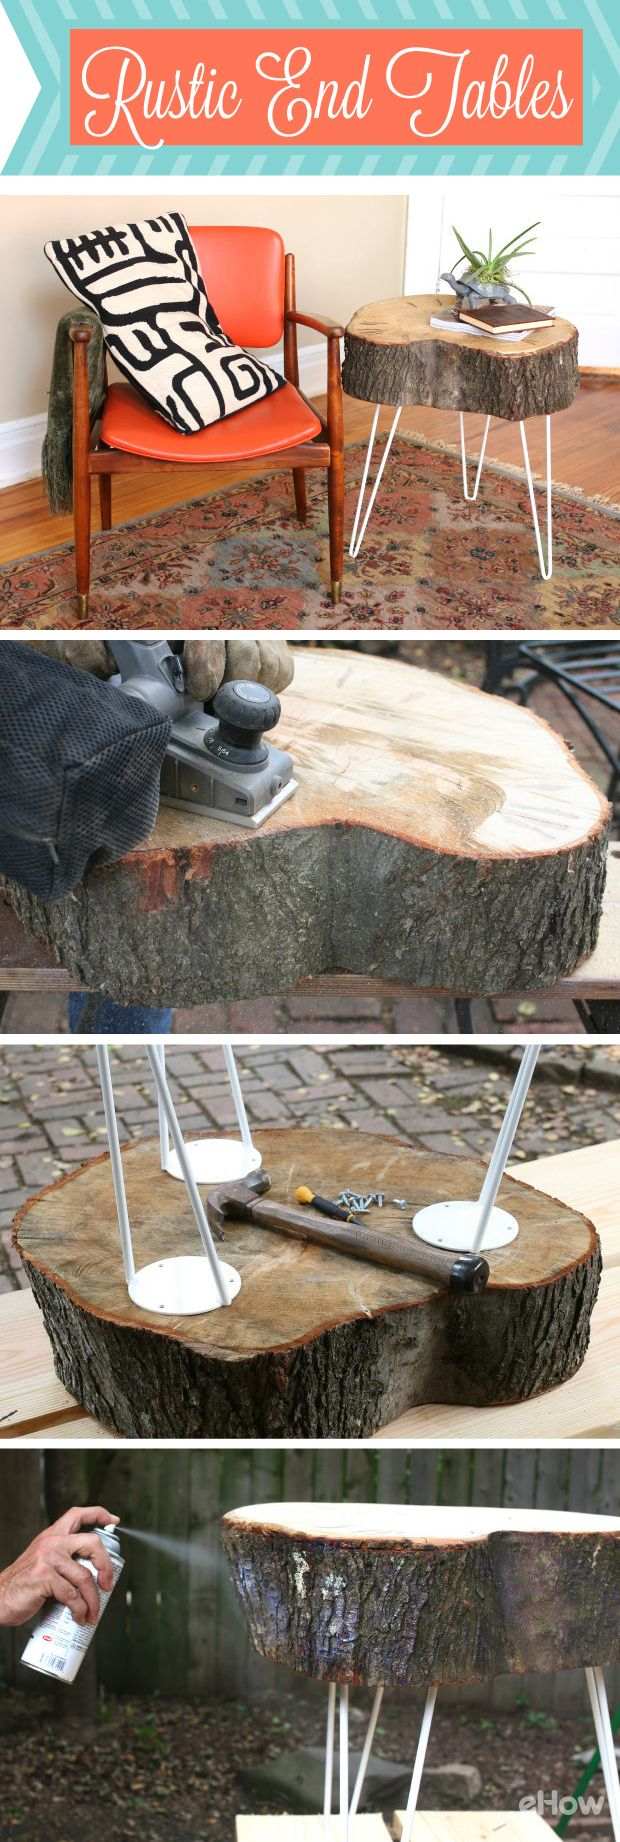 diy your own custom rustic end tables from the sliced portion of a tree trunk and